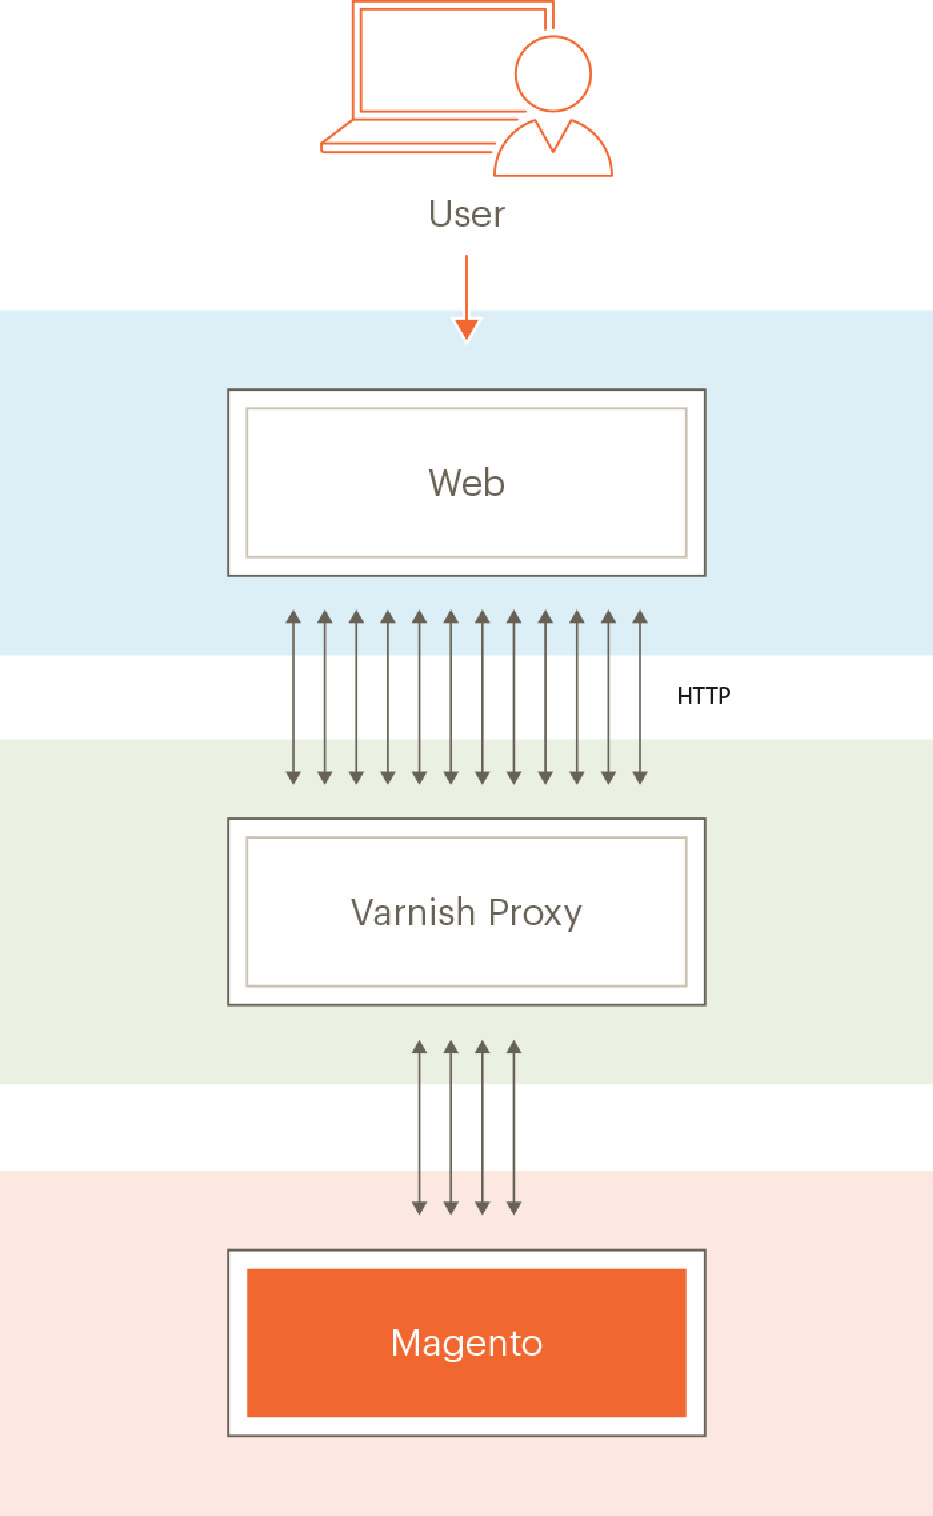 How Magento works with Varnish